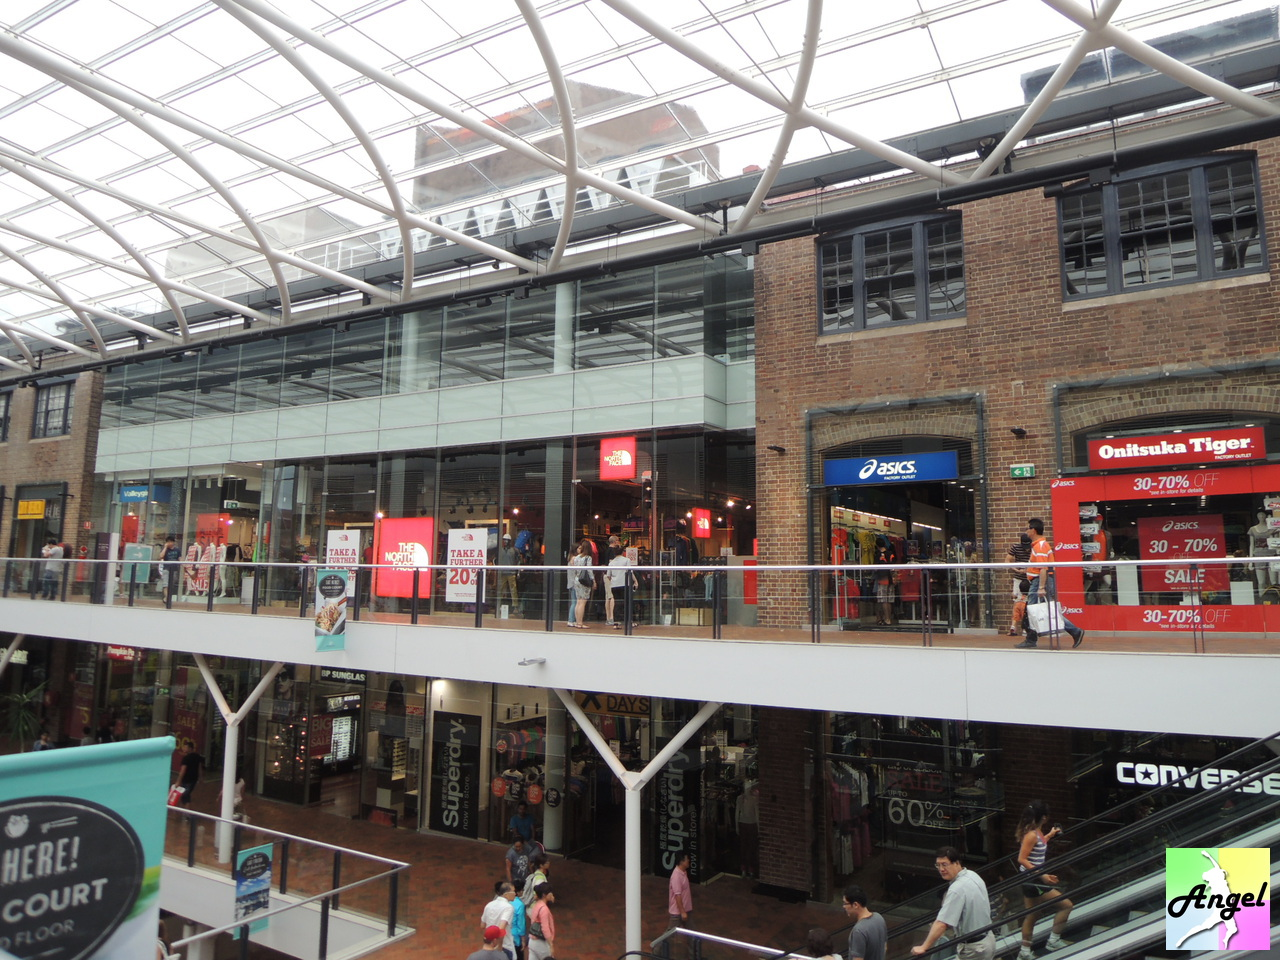 Sydney Shopping Outlets Sydney Top 3 Outlets Buy Cheap Famous Brands Sports